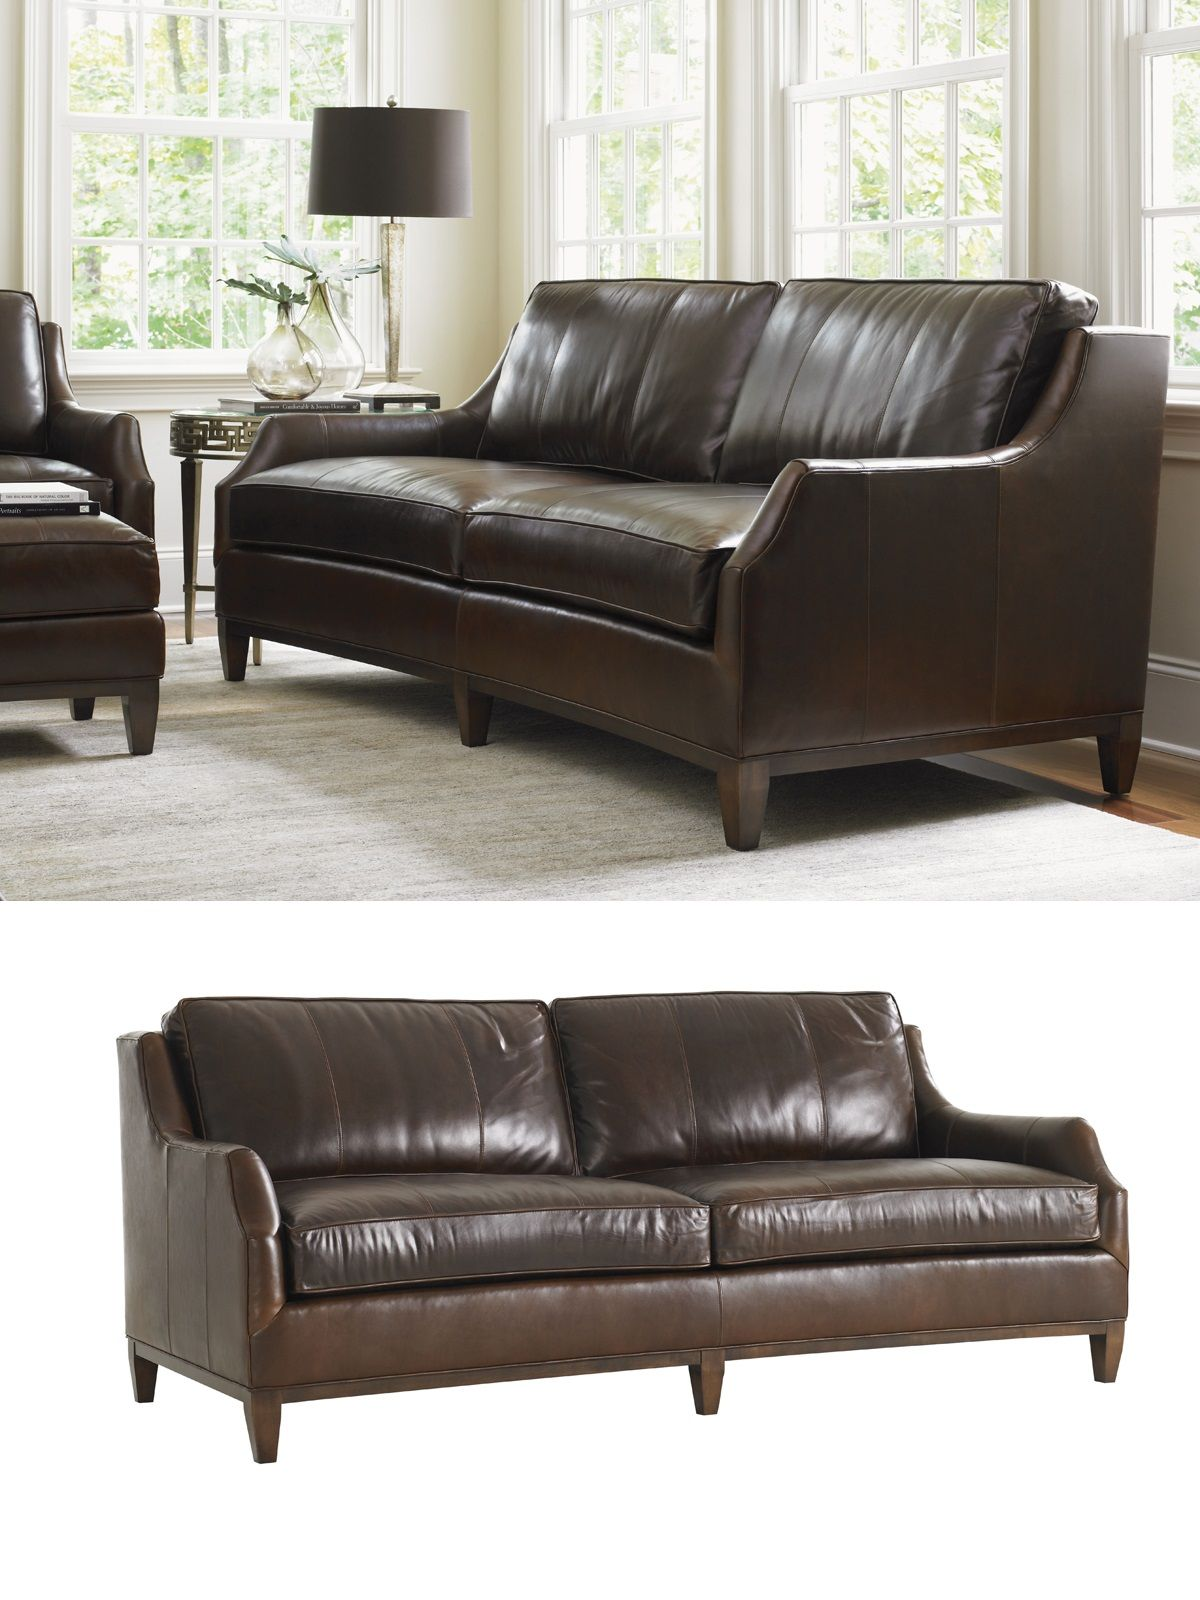 Sofa Sofas Couch Couches Http Www Instyle